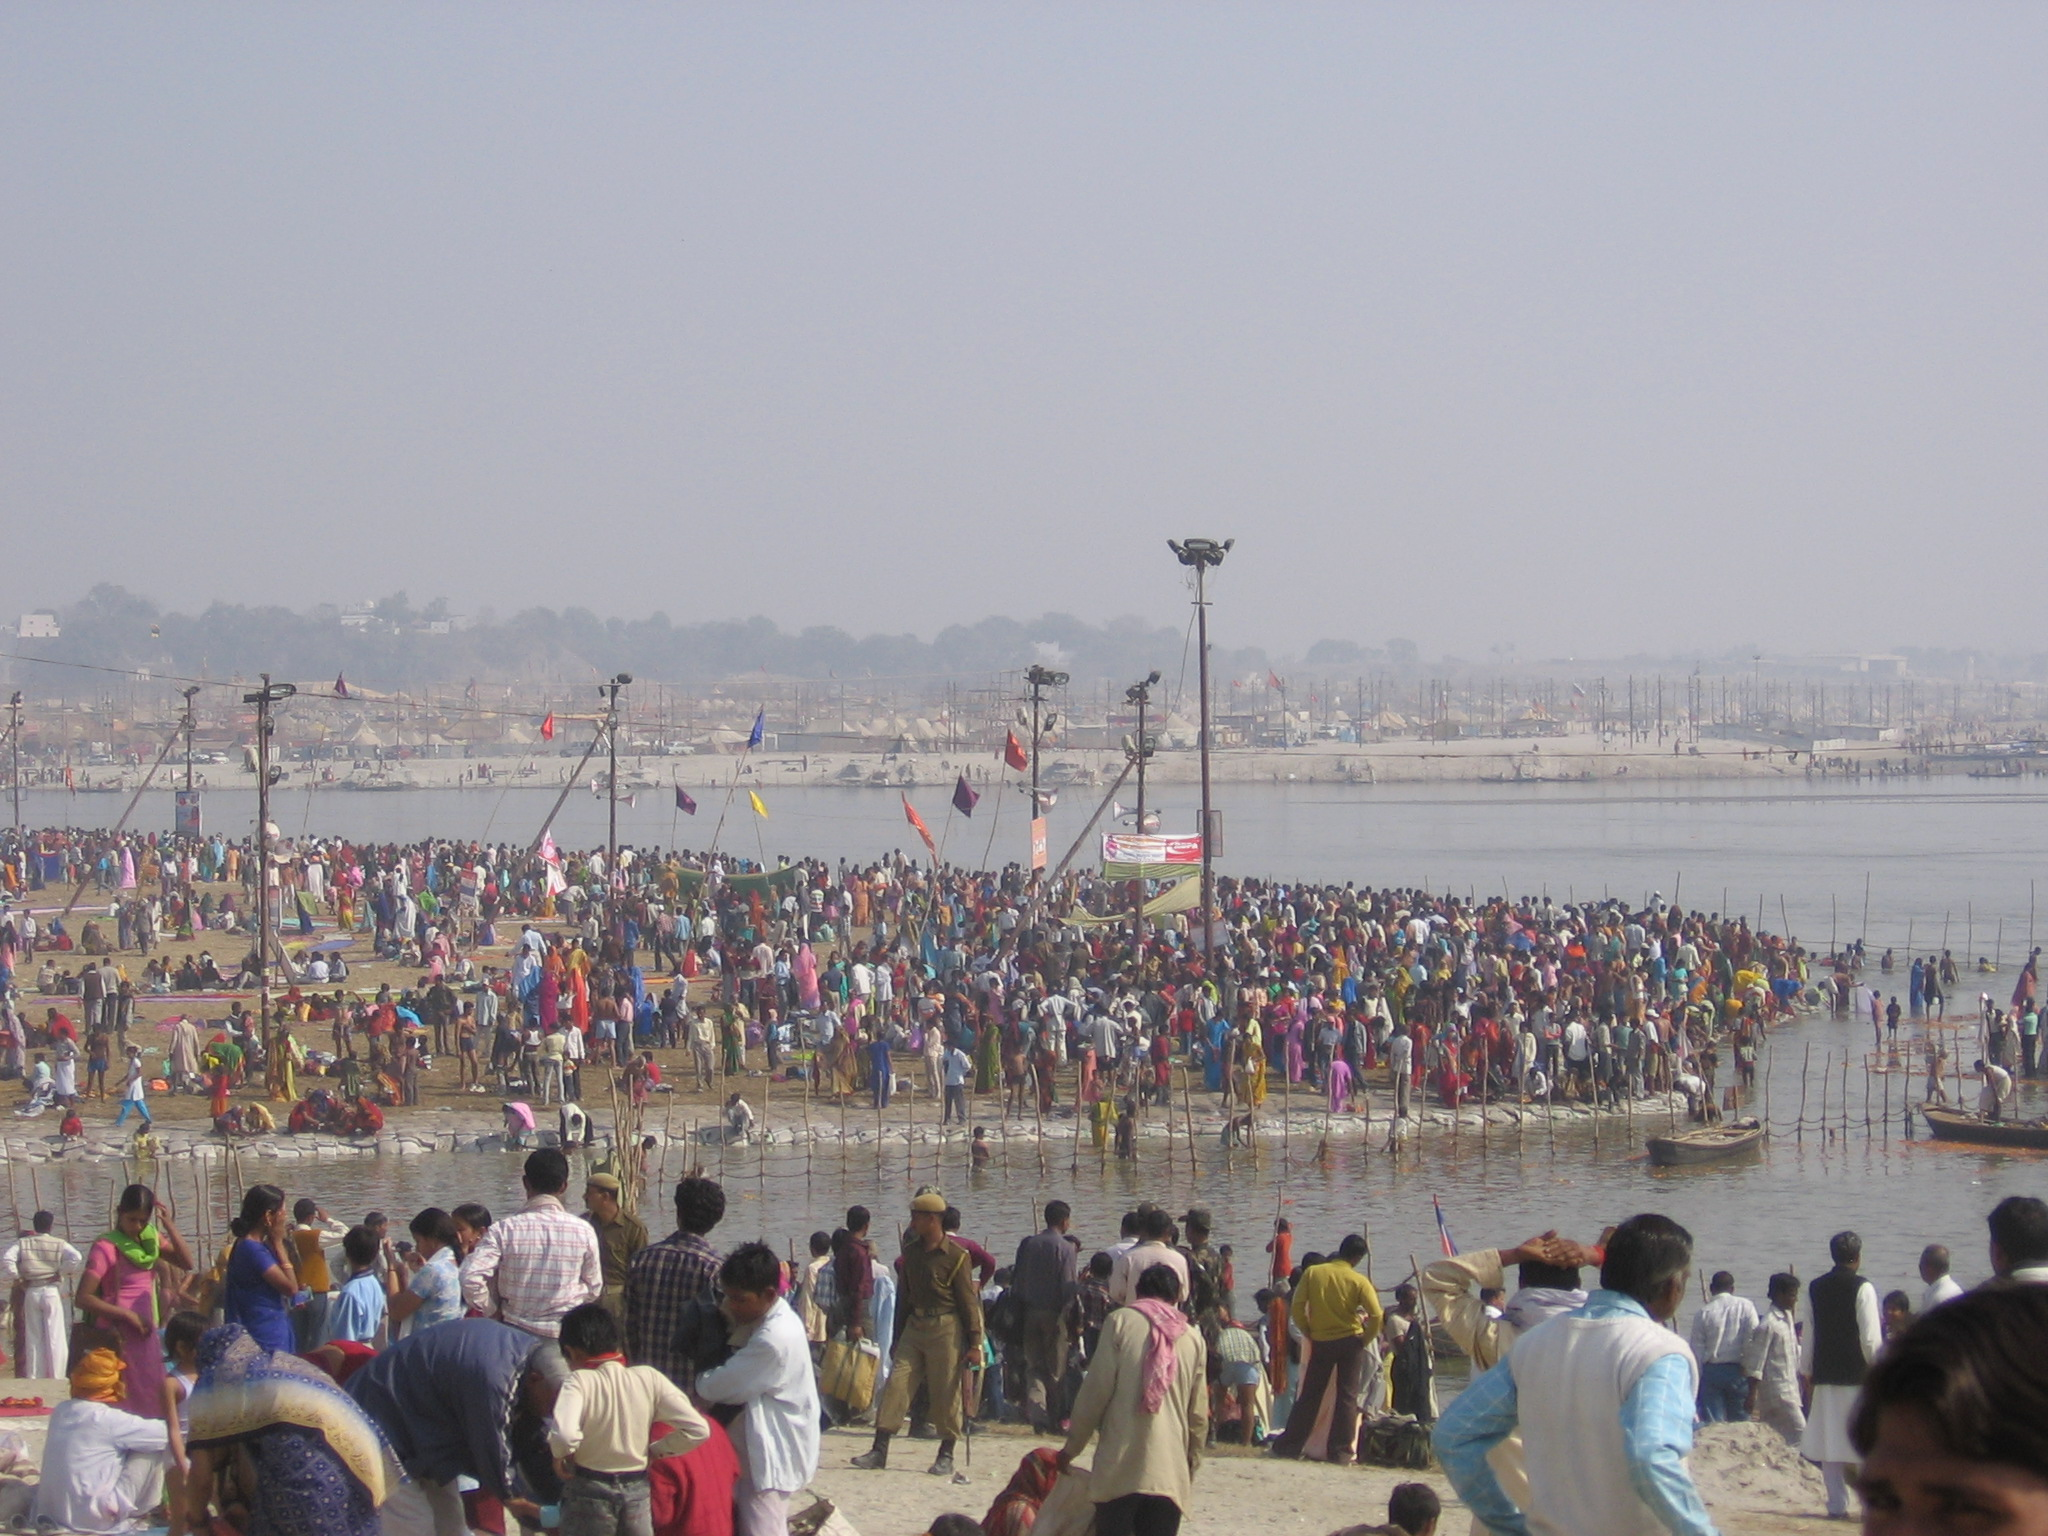 dating service allahabad Magh mela - allahabad 2017 & 2018 (mini kumbh), allahabad, india sun jan 15 2017 at 03:00 pm, the magh (kumbh) mela is one of the greatest annual religious affairs for hindus.